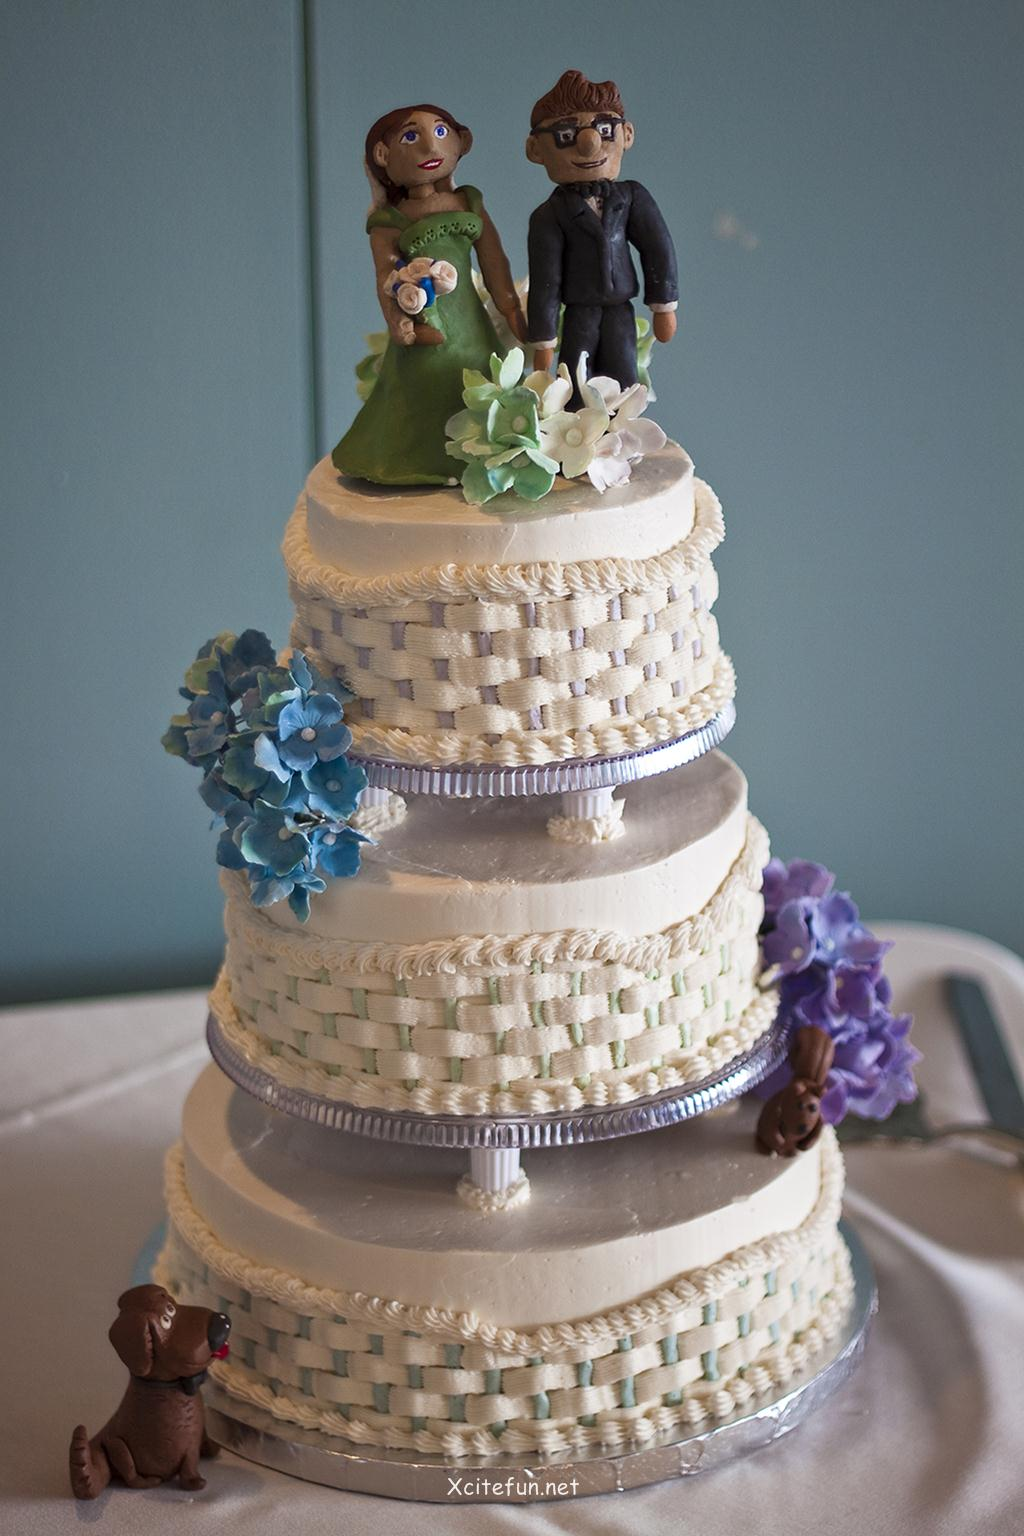 Cake Decorating Ideas For Weddings : Wedding Cakes - Decorating Ideas - XciteFun.net